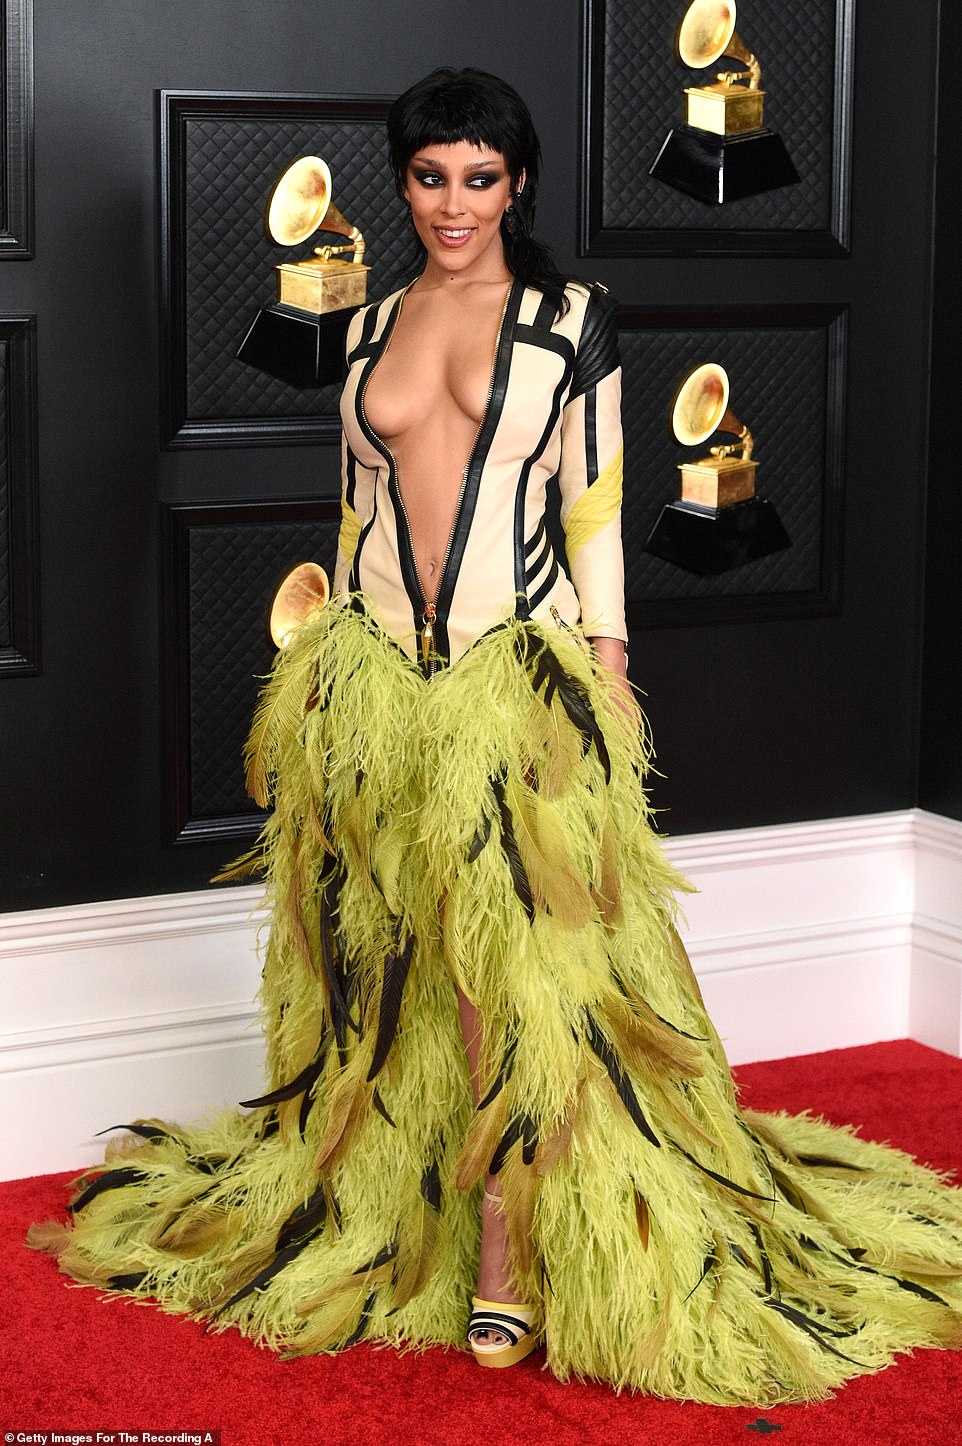 It's a look: Doja Cat put on an eye-popping display in a dress by Roberto Cavalli which featured an unzipped leather jacket with feather skirt attached